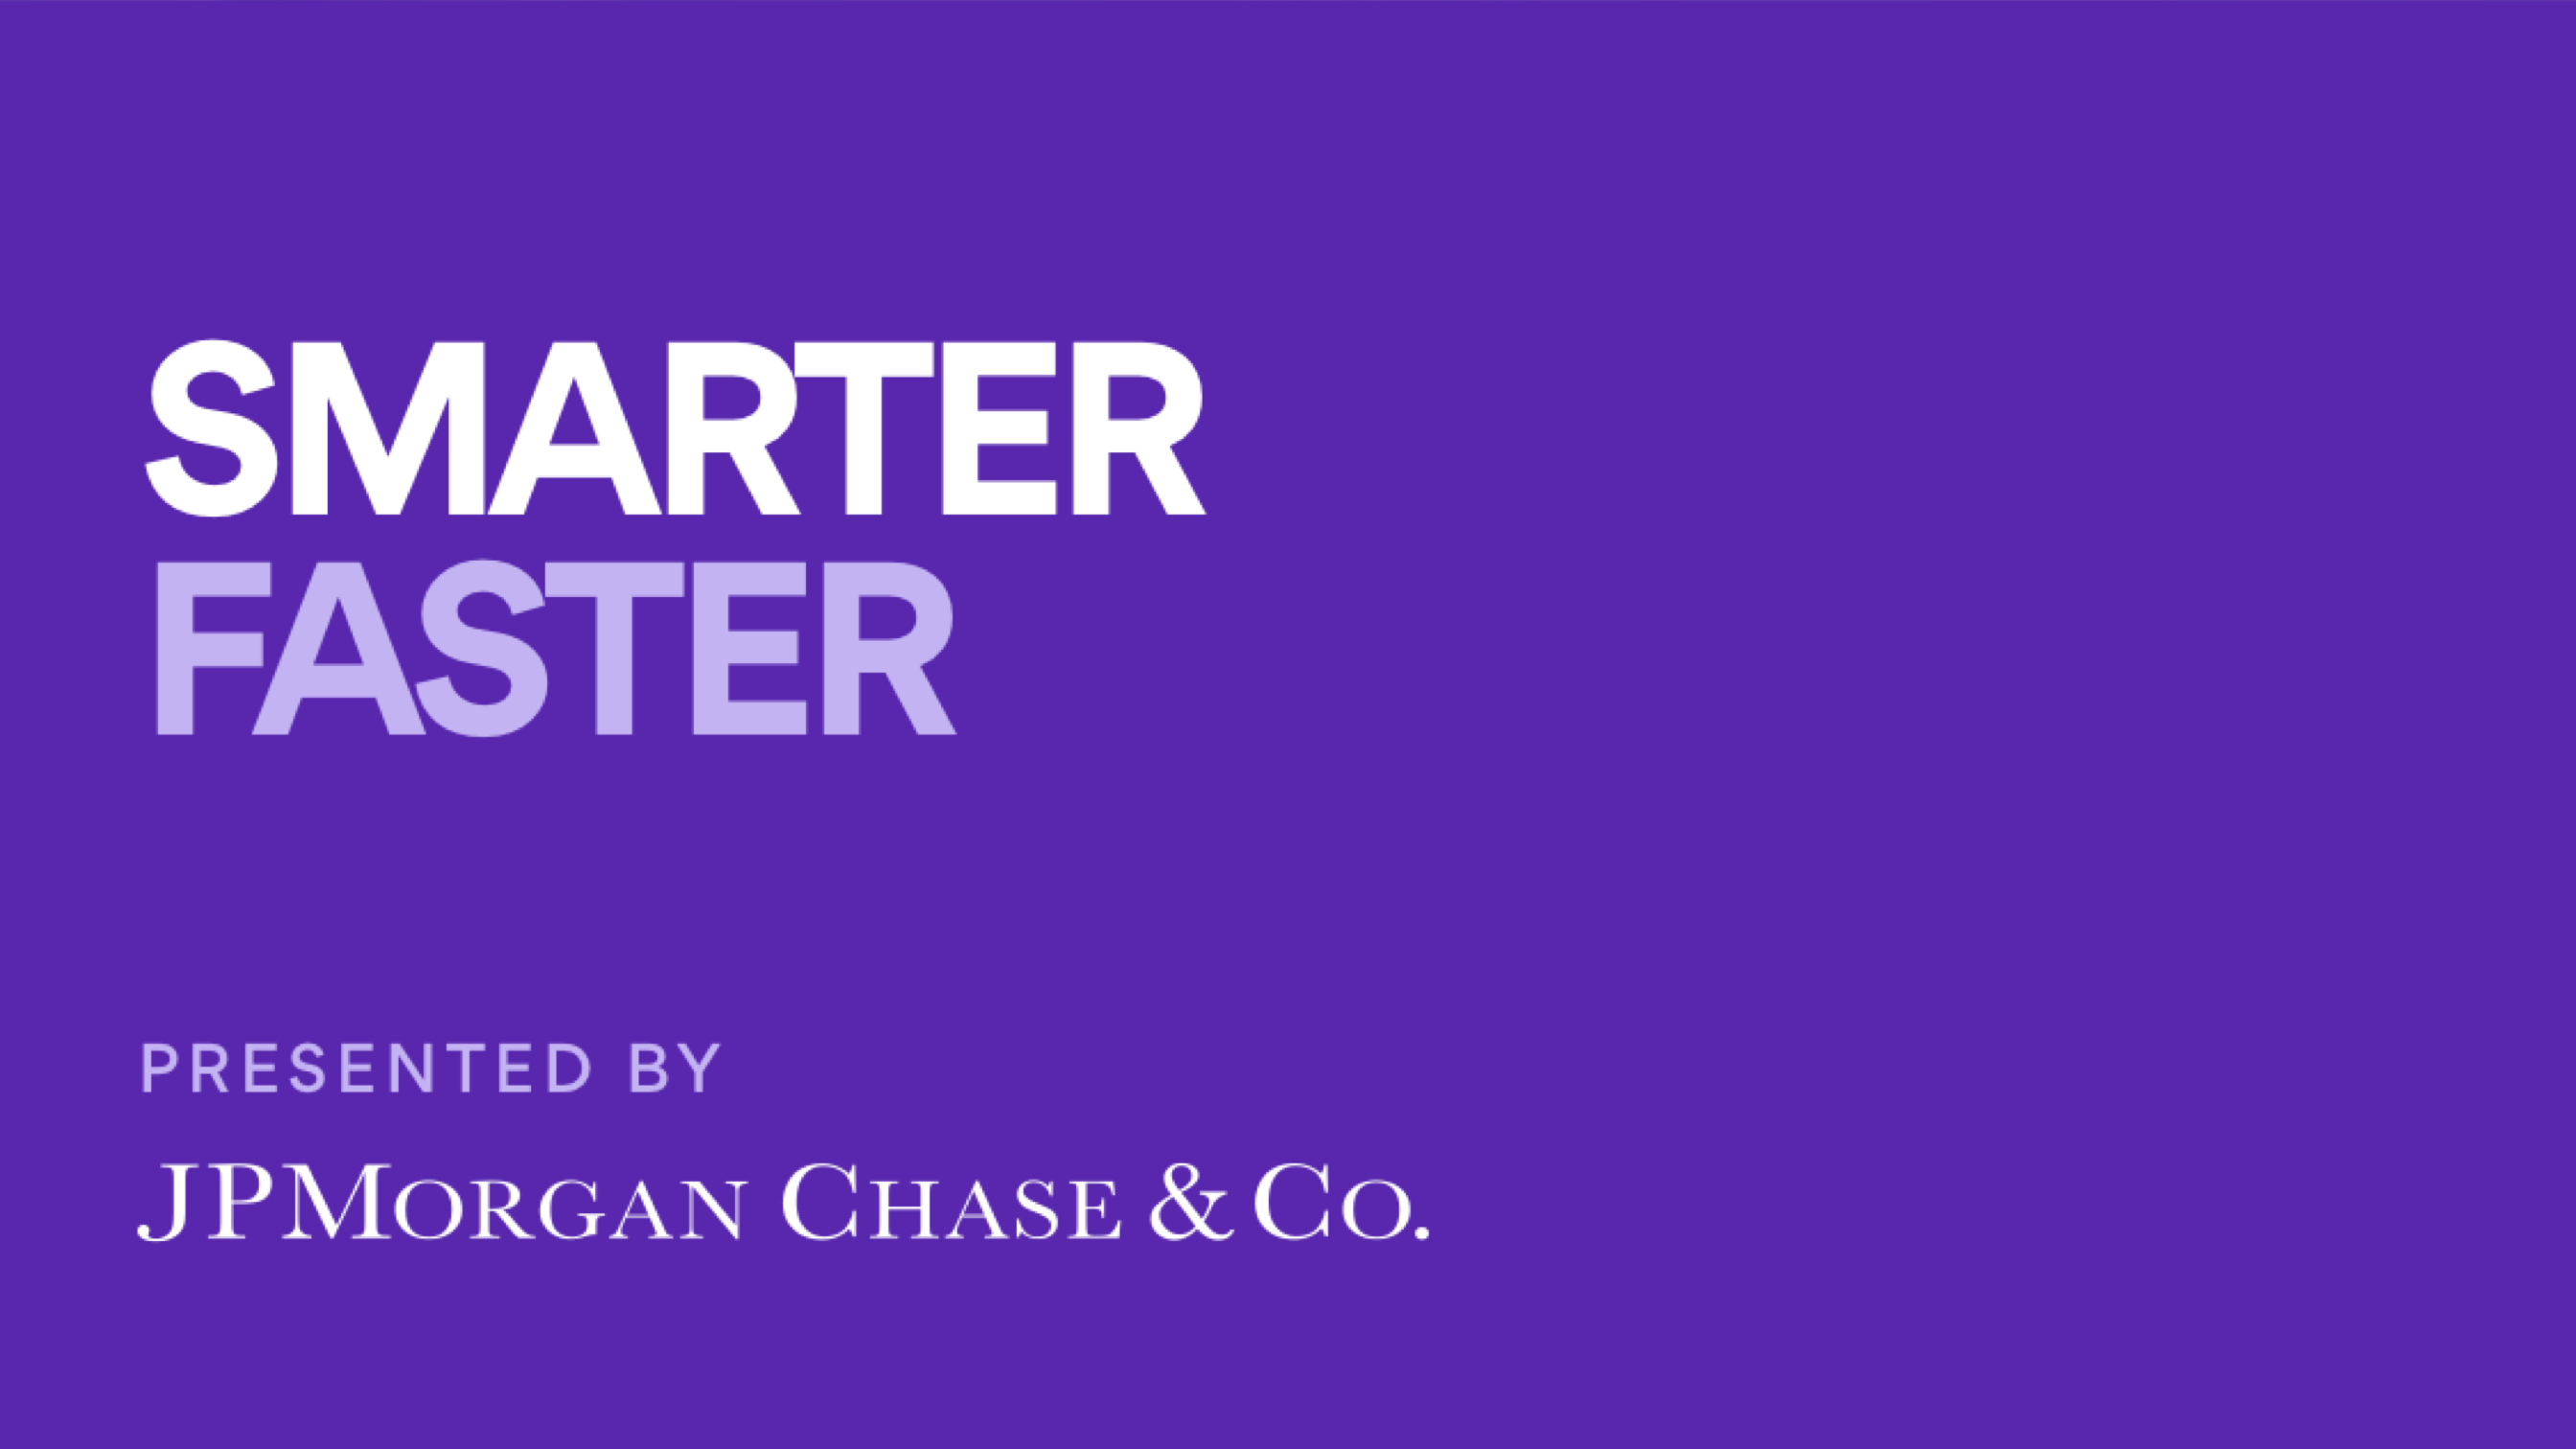 Smarter Faster: Presented by JP Morgan Chase & Co.